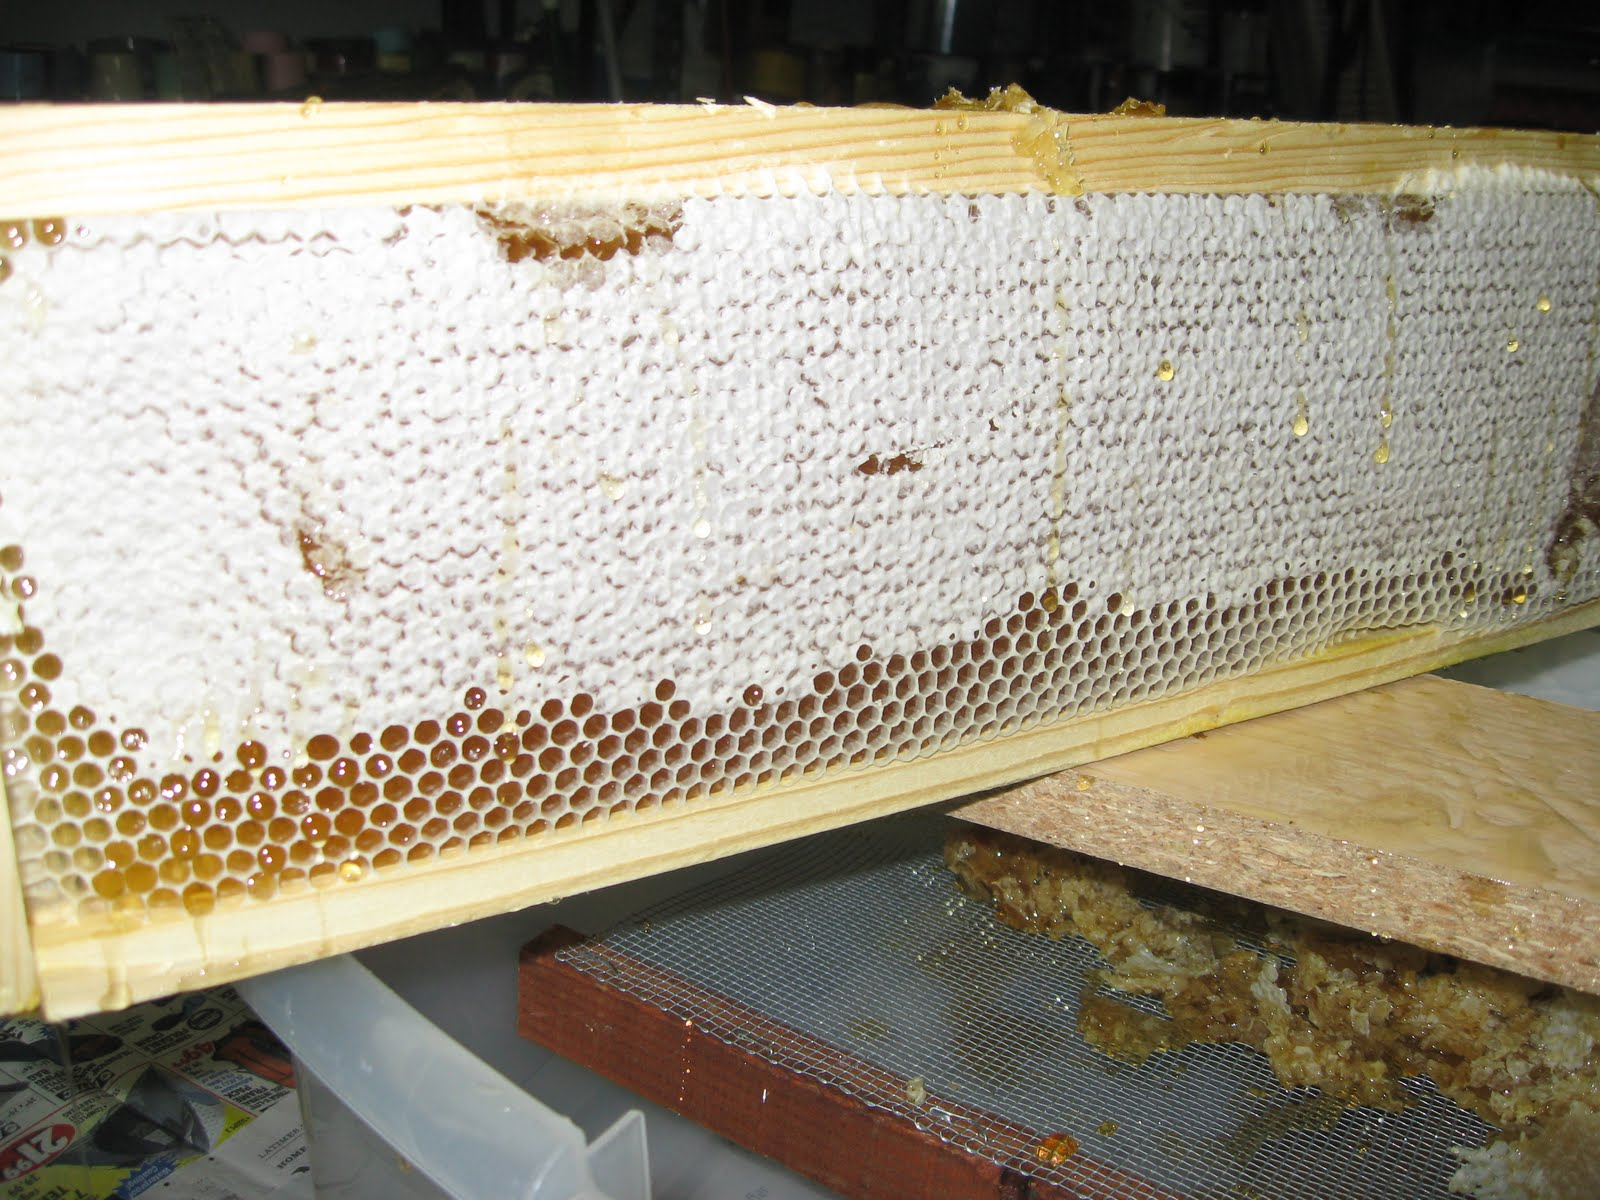 How to Know When to Harvest Honey from Your Beehive